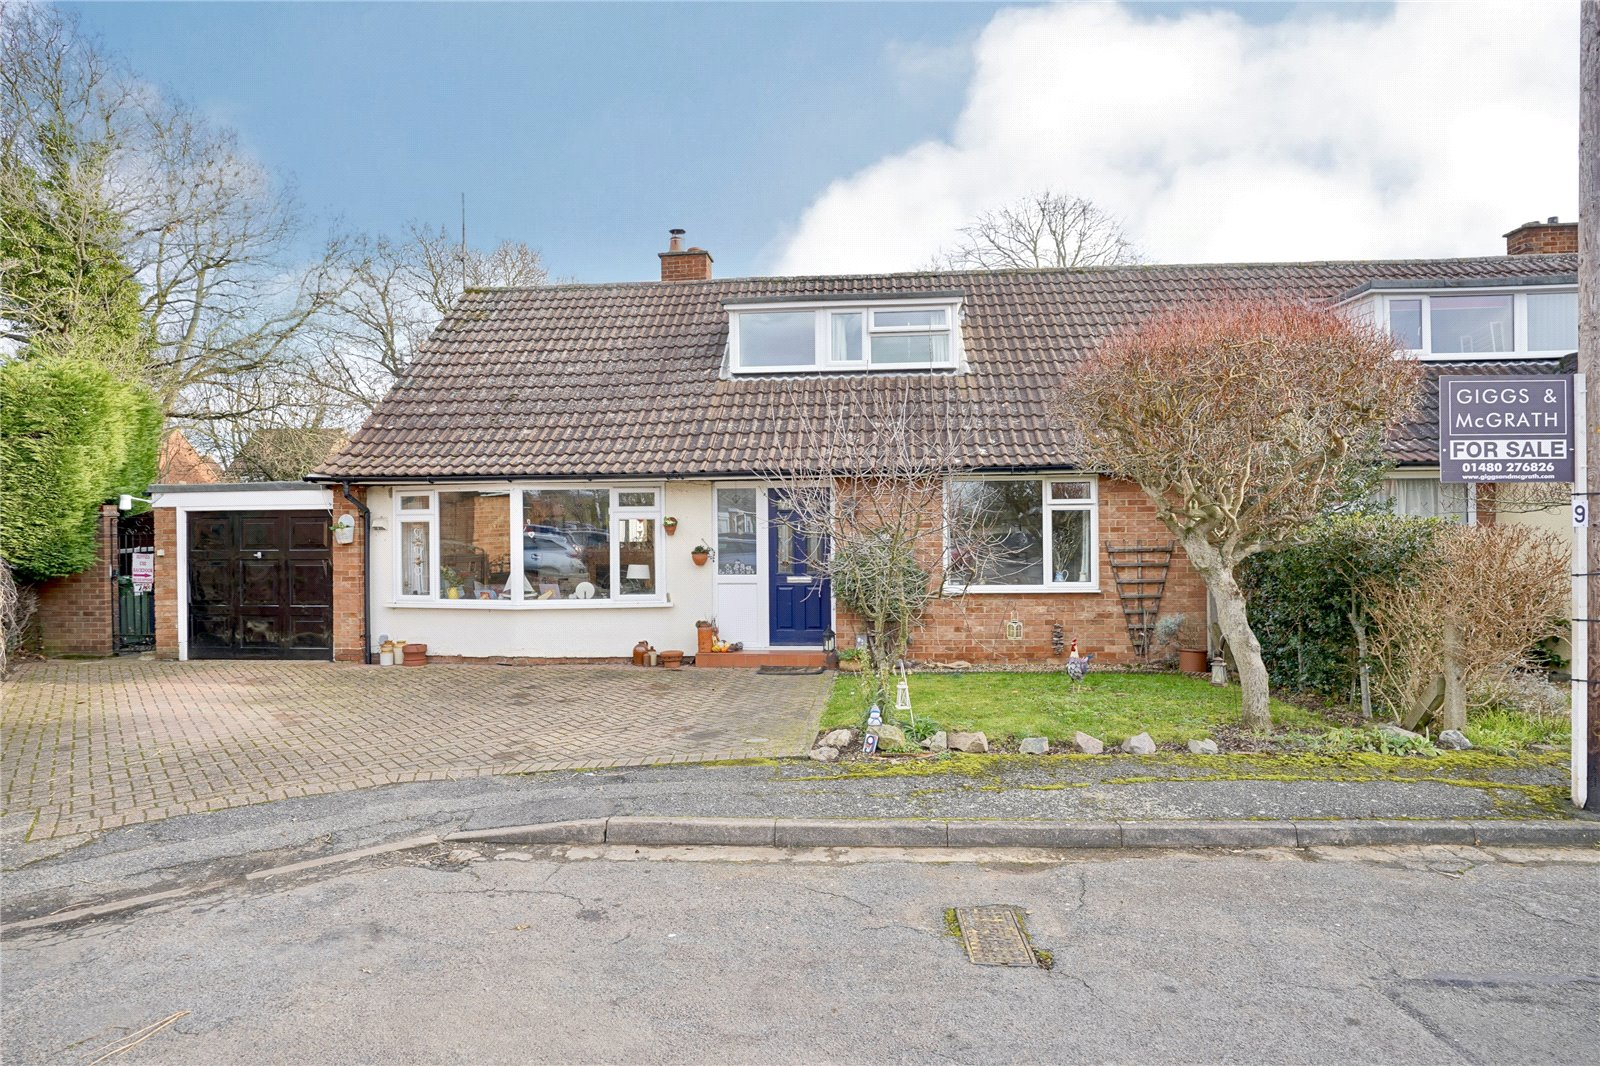 3 bed house for sale in Hemingford Grey, PE28 9BS  - Property Image 3